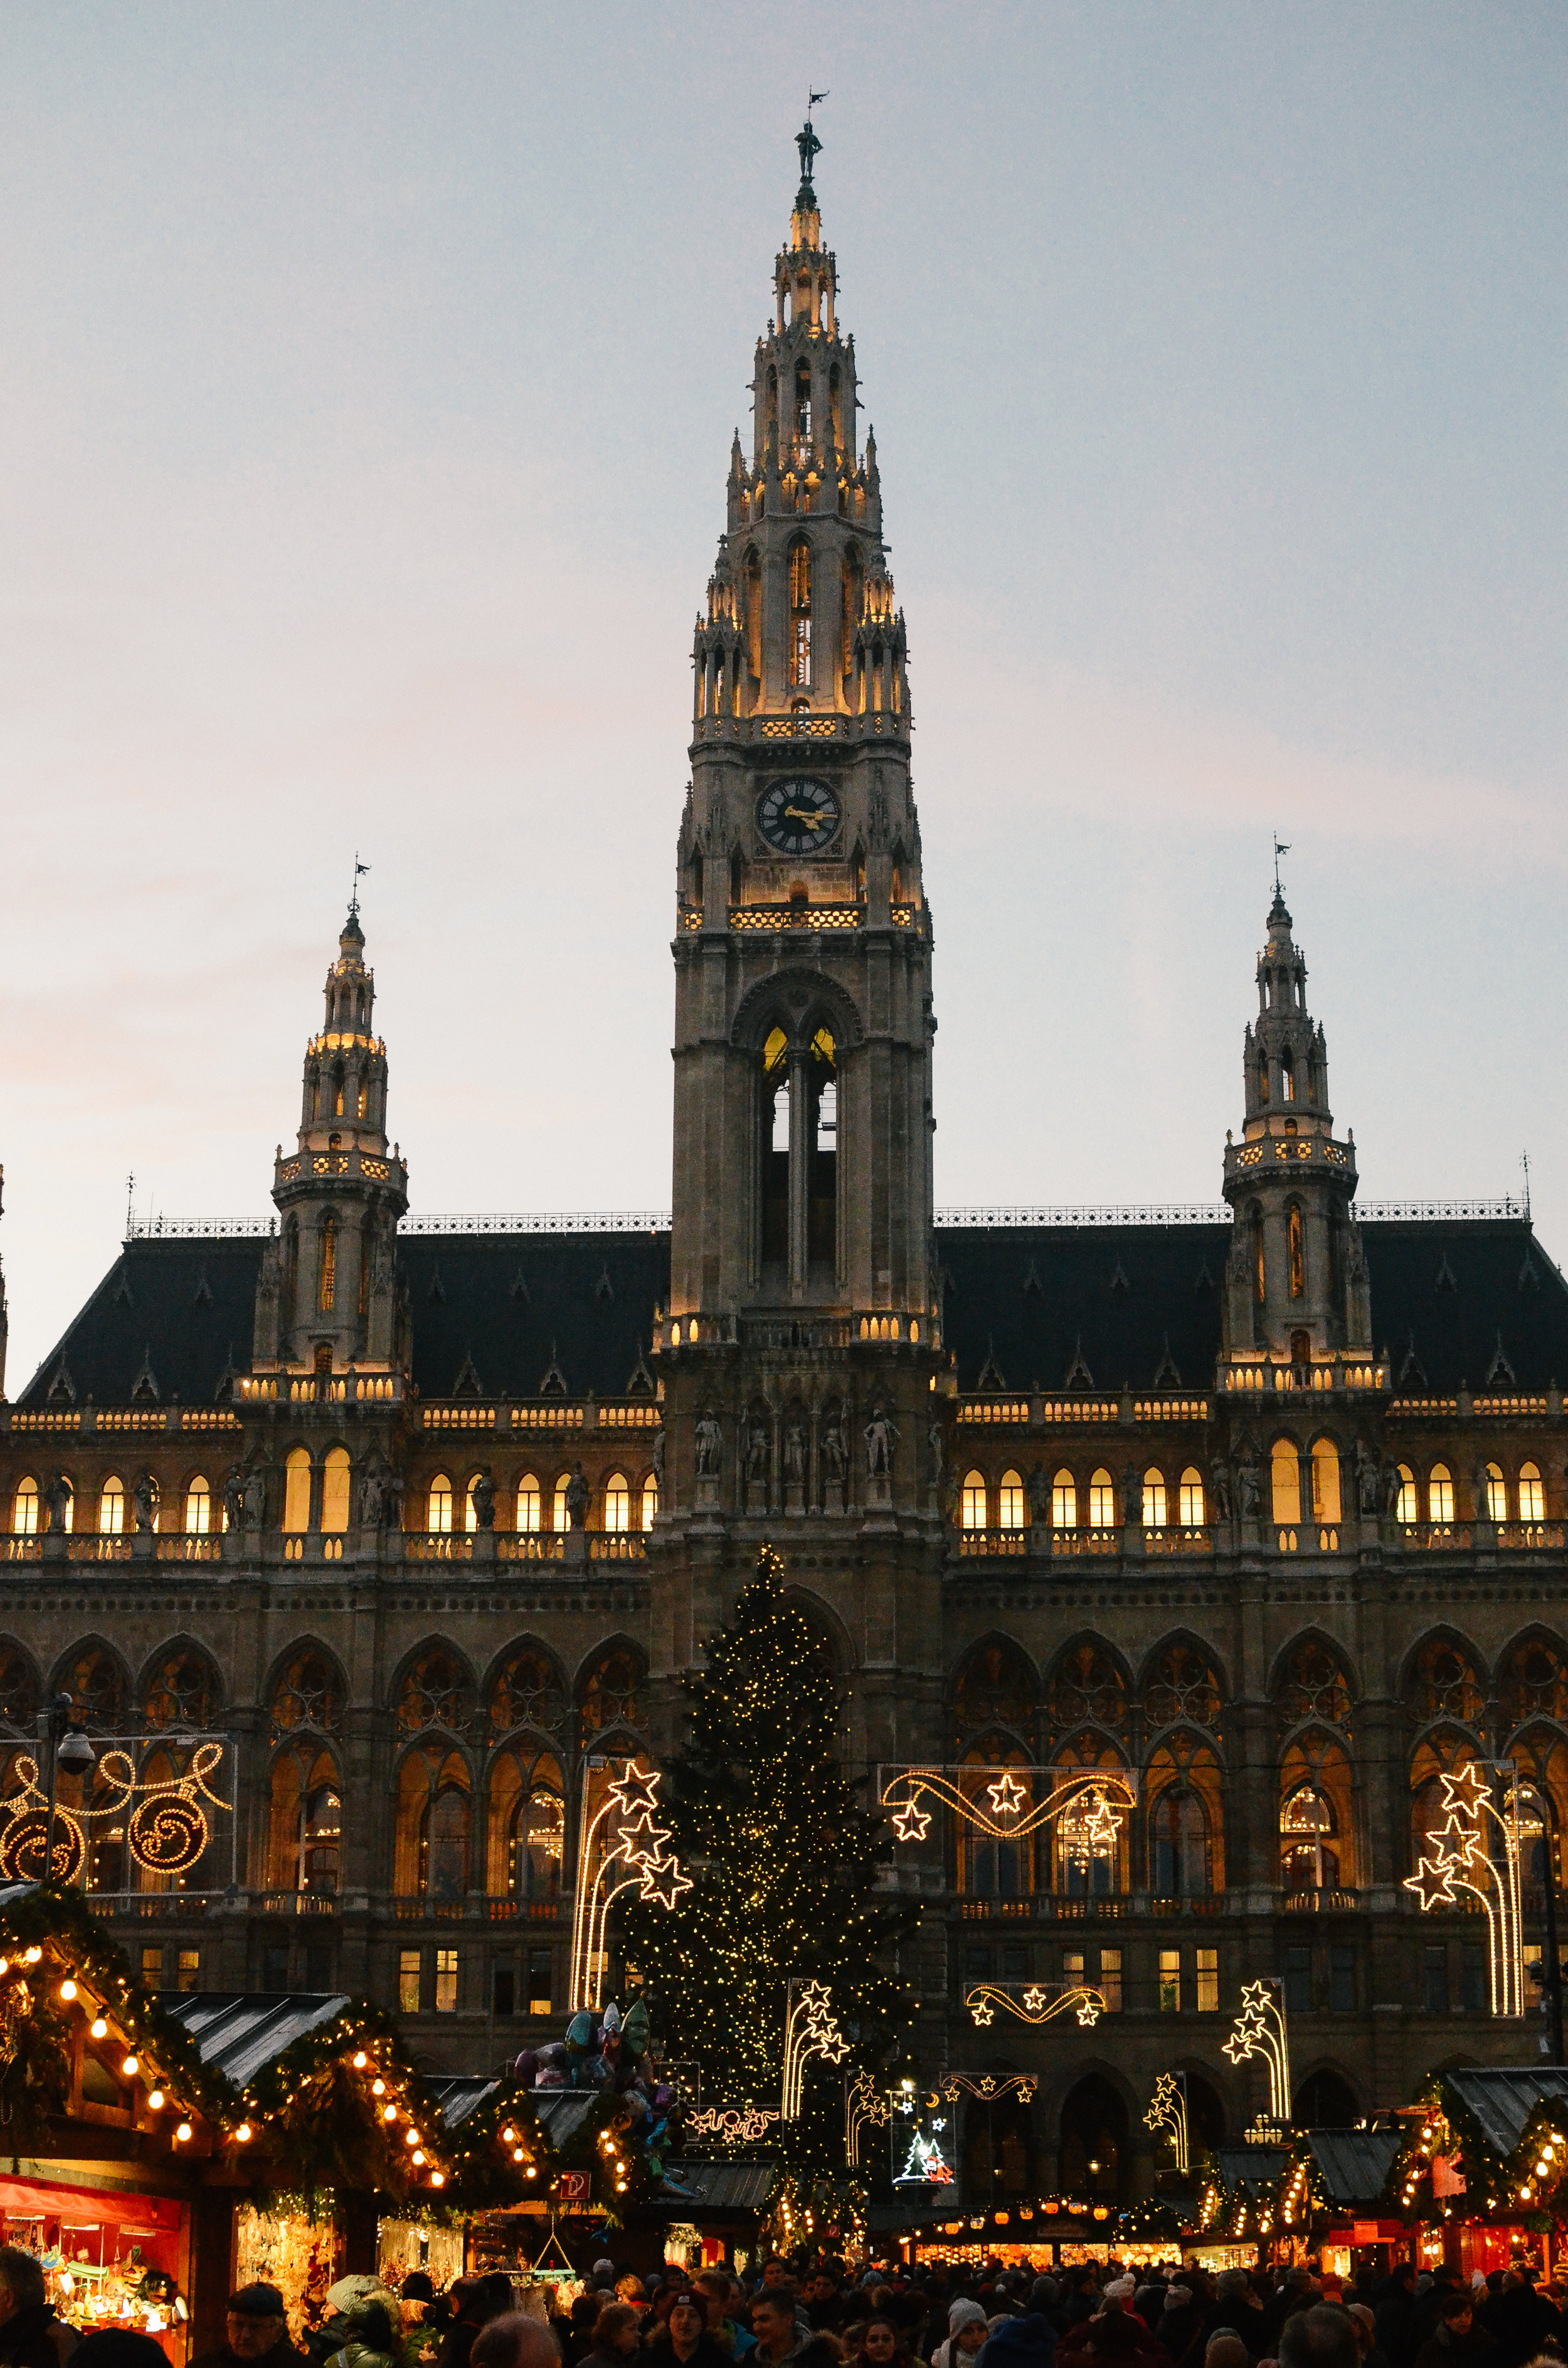 european-christmas-market-travel-guide-lifeonpine_DSC_1499.jpg